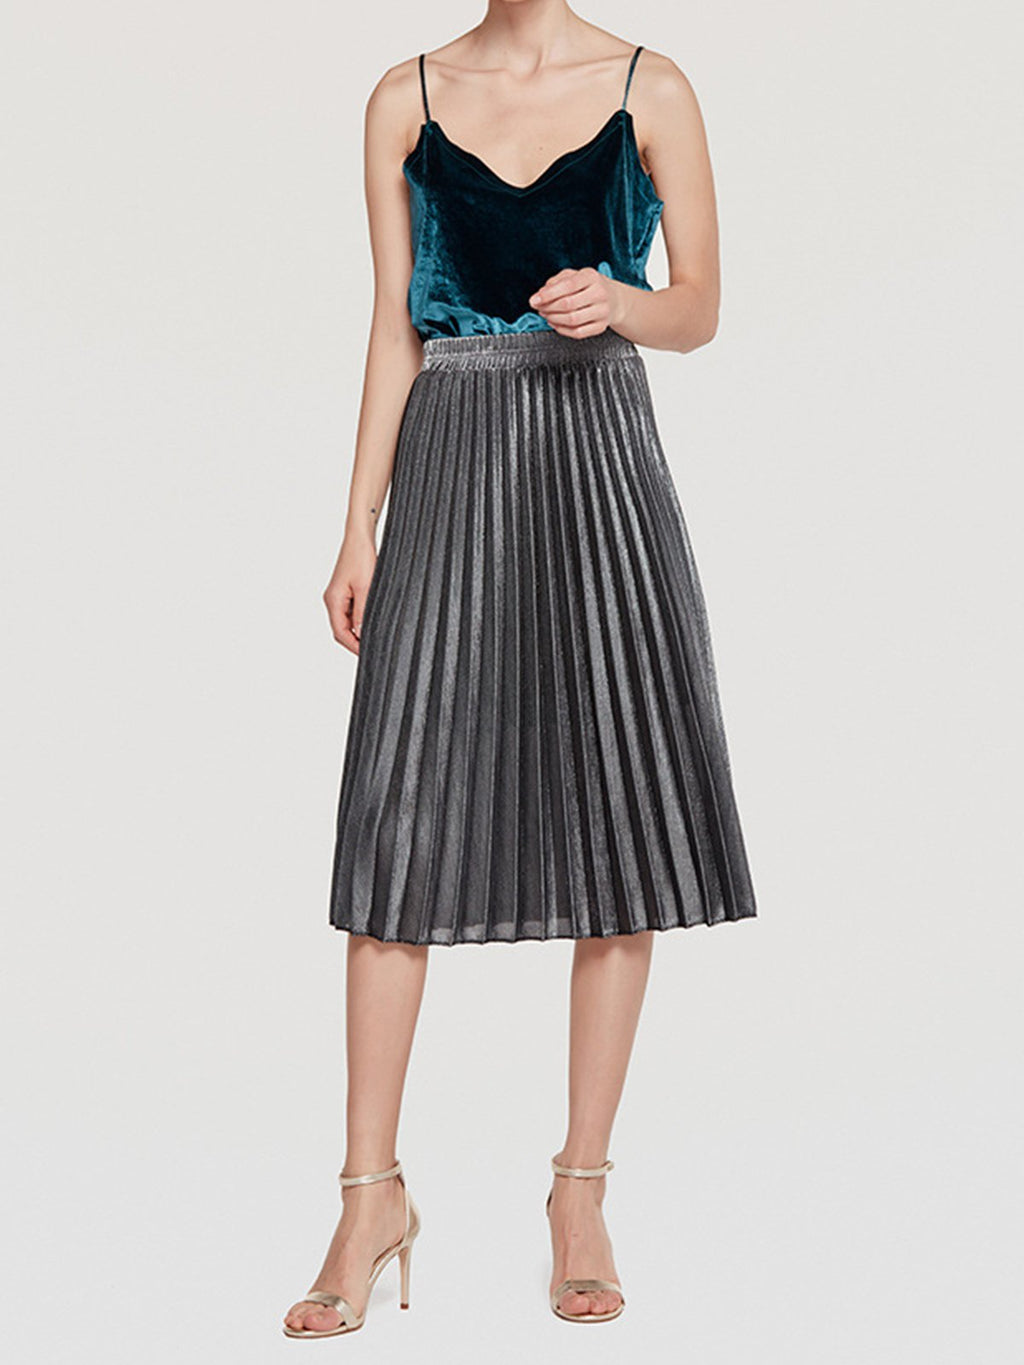 Sliver High Waist A-line Swing Beach Midi Pleated Skirt